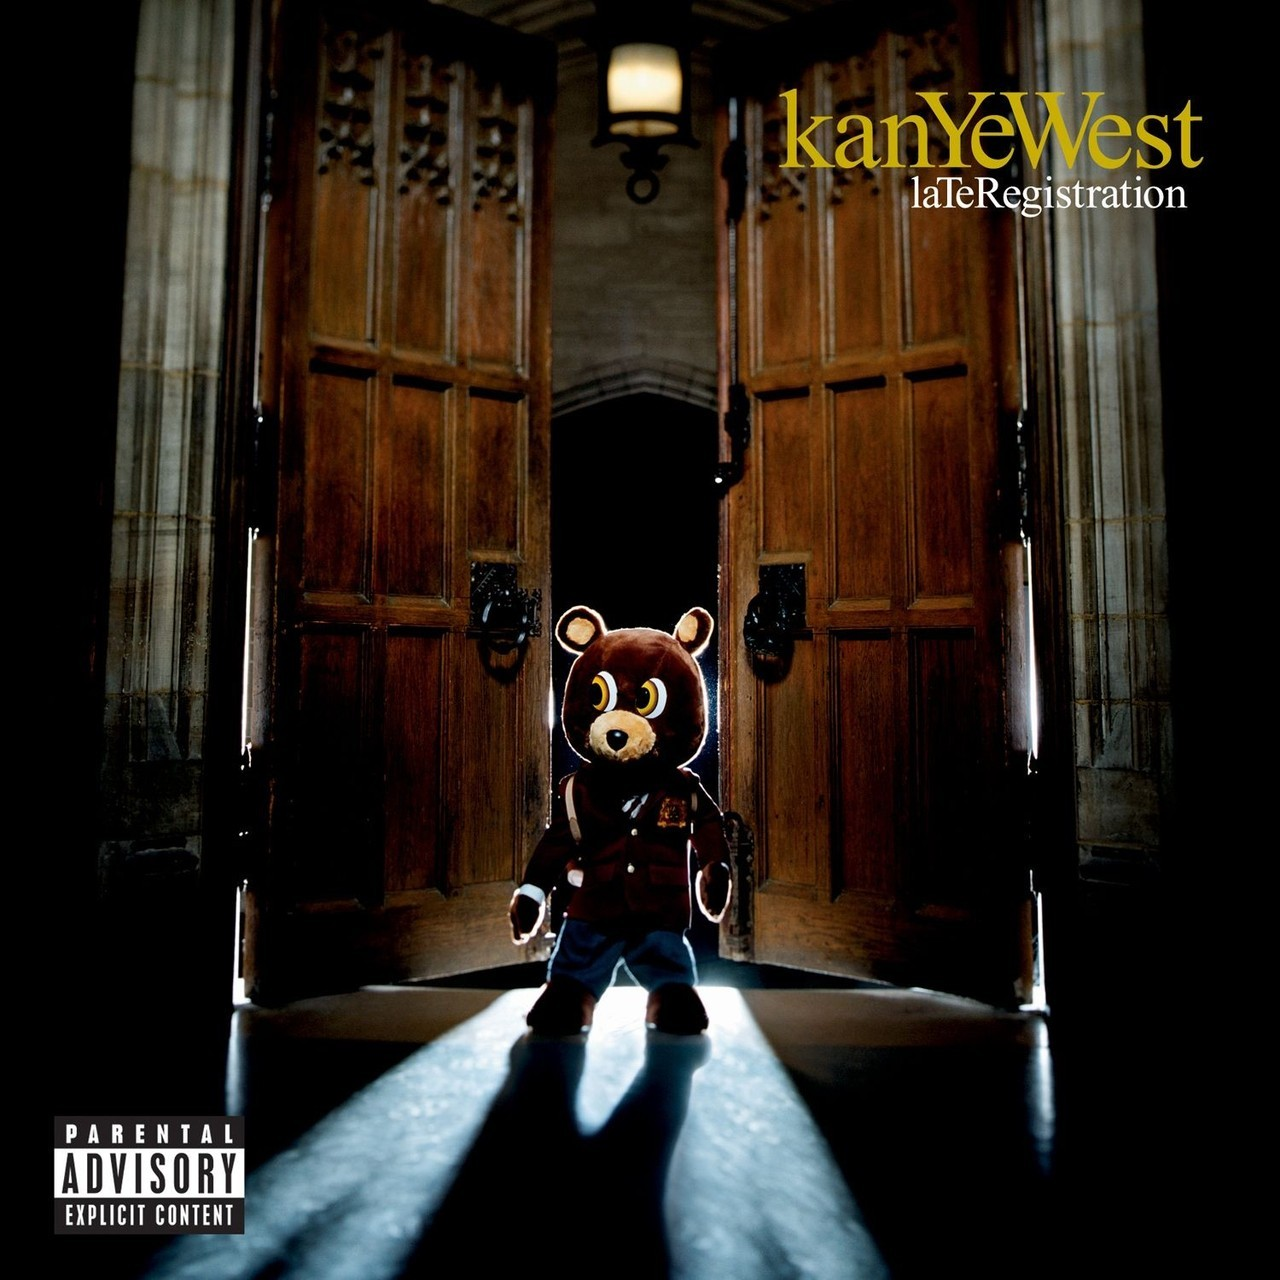 BACK IN THE DAY |8/30/05| Kanye West released his second album, Late Registration on Roc-A-Fella/Def Jam Records.